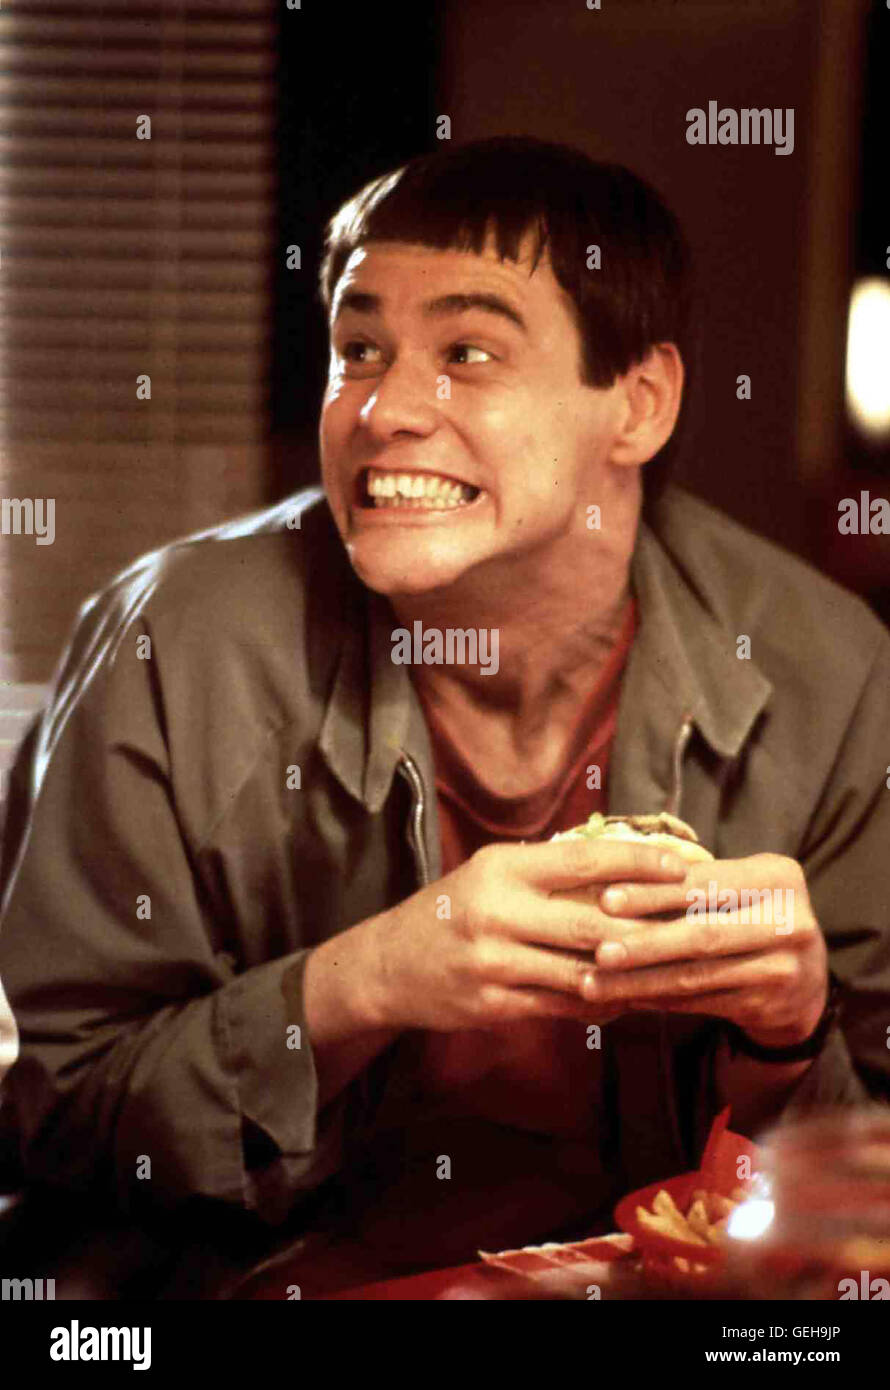 dumb and dumber to film stock photos amp dumb and dumber to